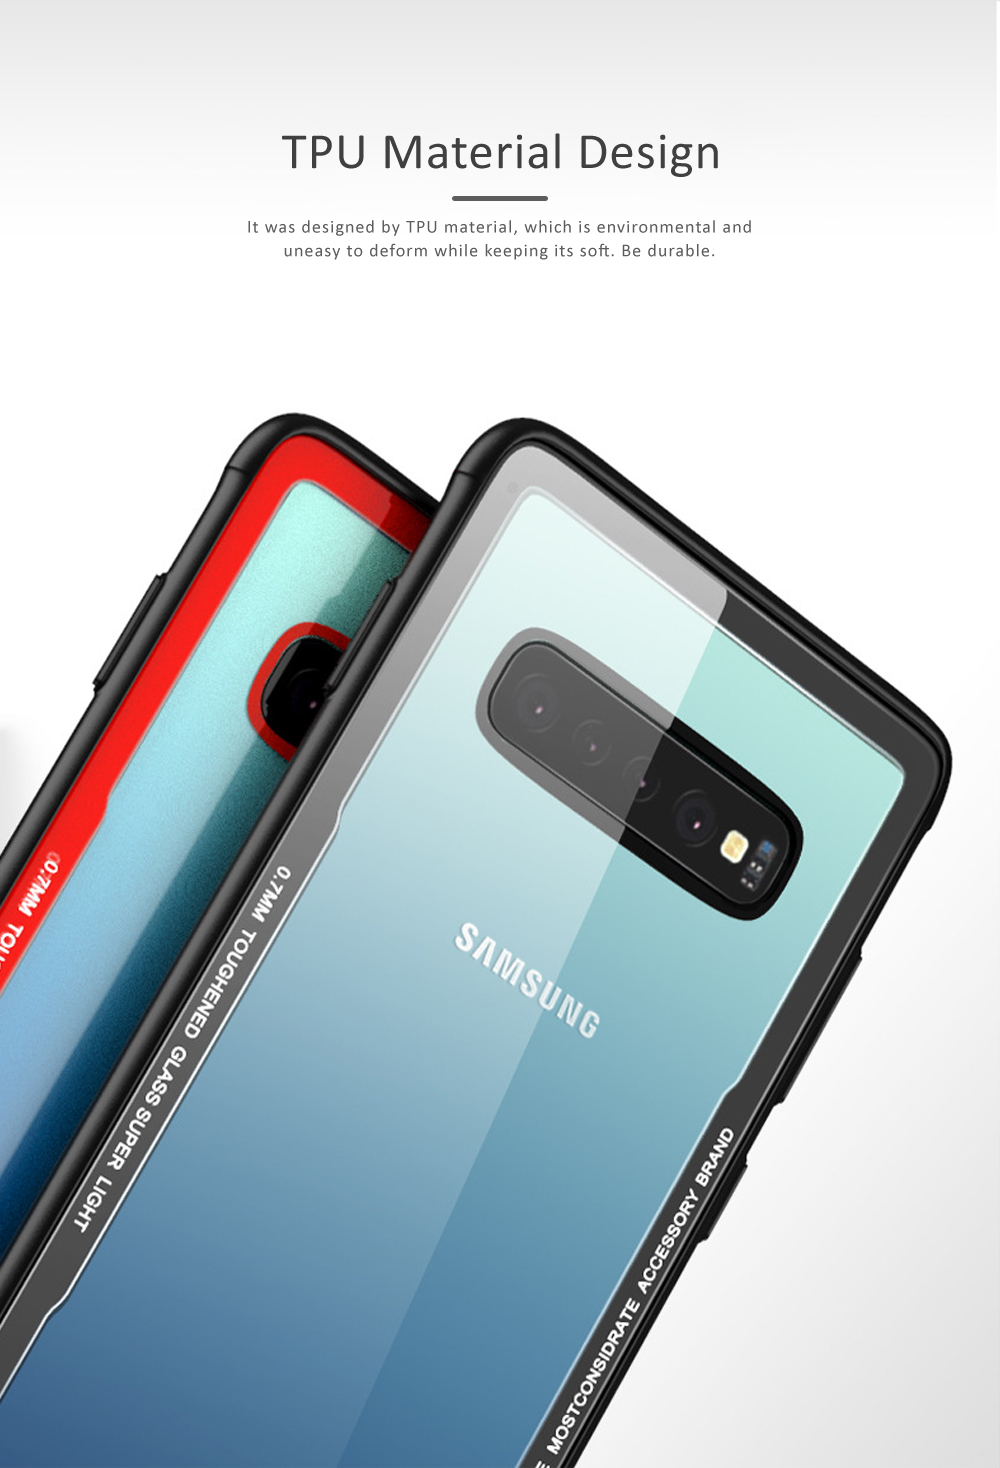 Samsung S10 Phone Case, New Transparent S10 Tempered Glass Case, Anti-fall & Anti-Scratch Samsung Contracted Phone Case for S10, S10 Plus, S10 Lite 3